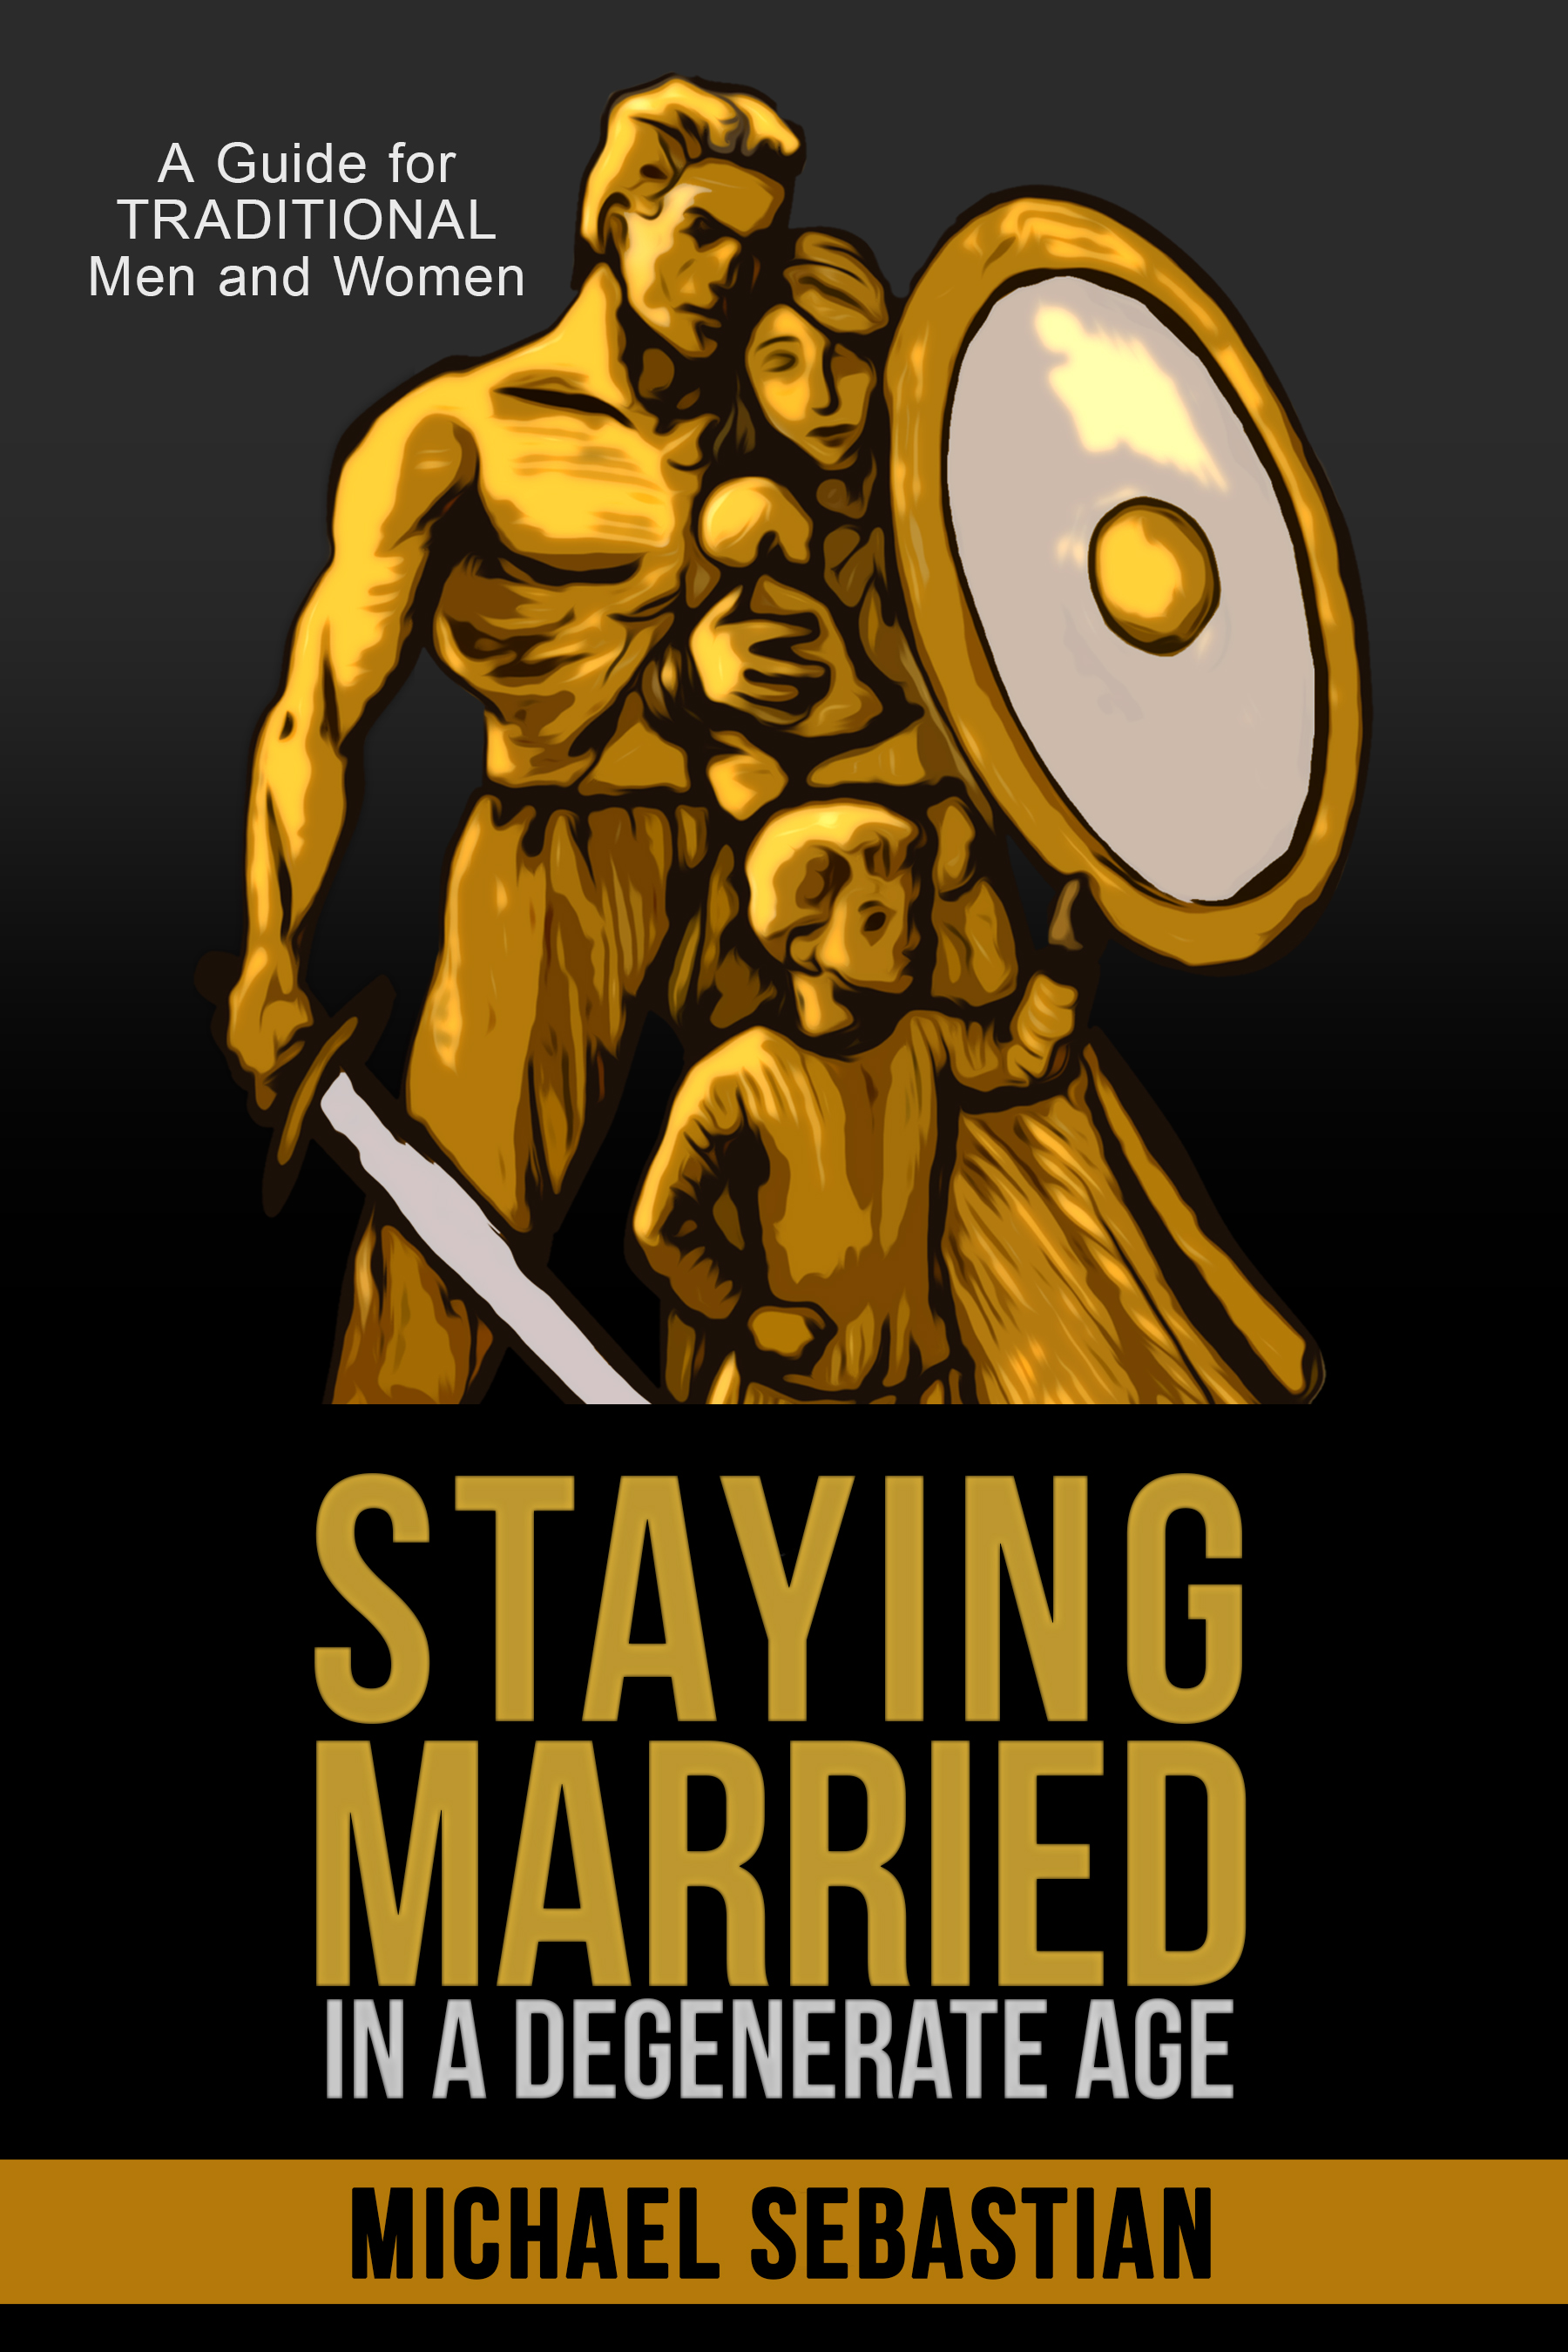 Staying Married in a Degenerate Age is Available & A Chance to Win a $100 Amazon Gift Card